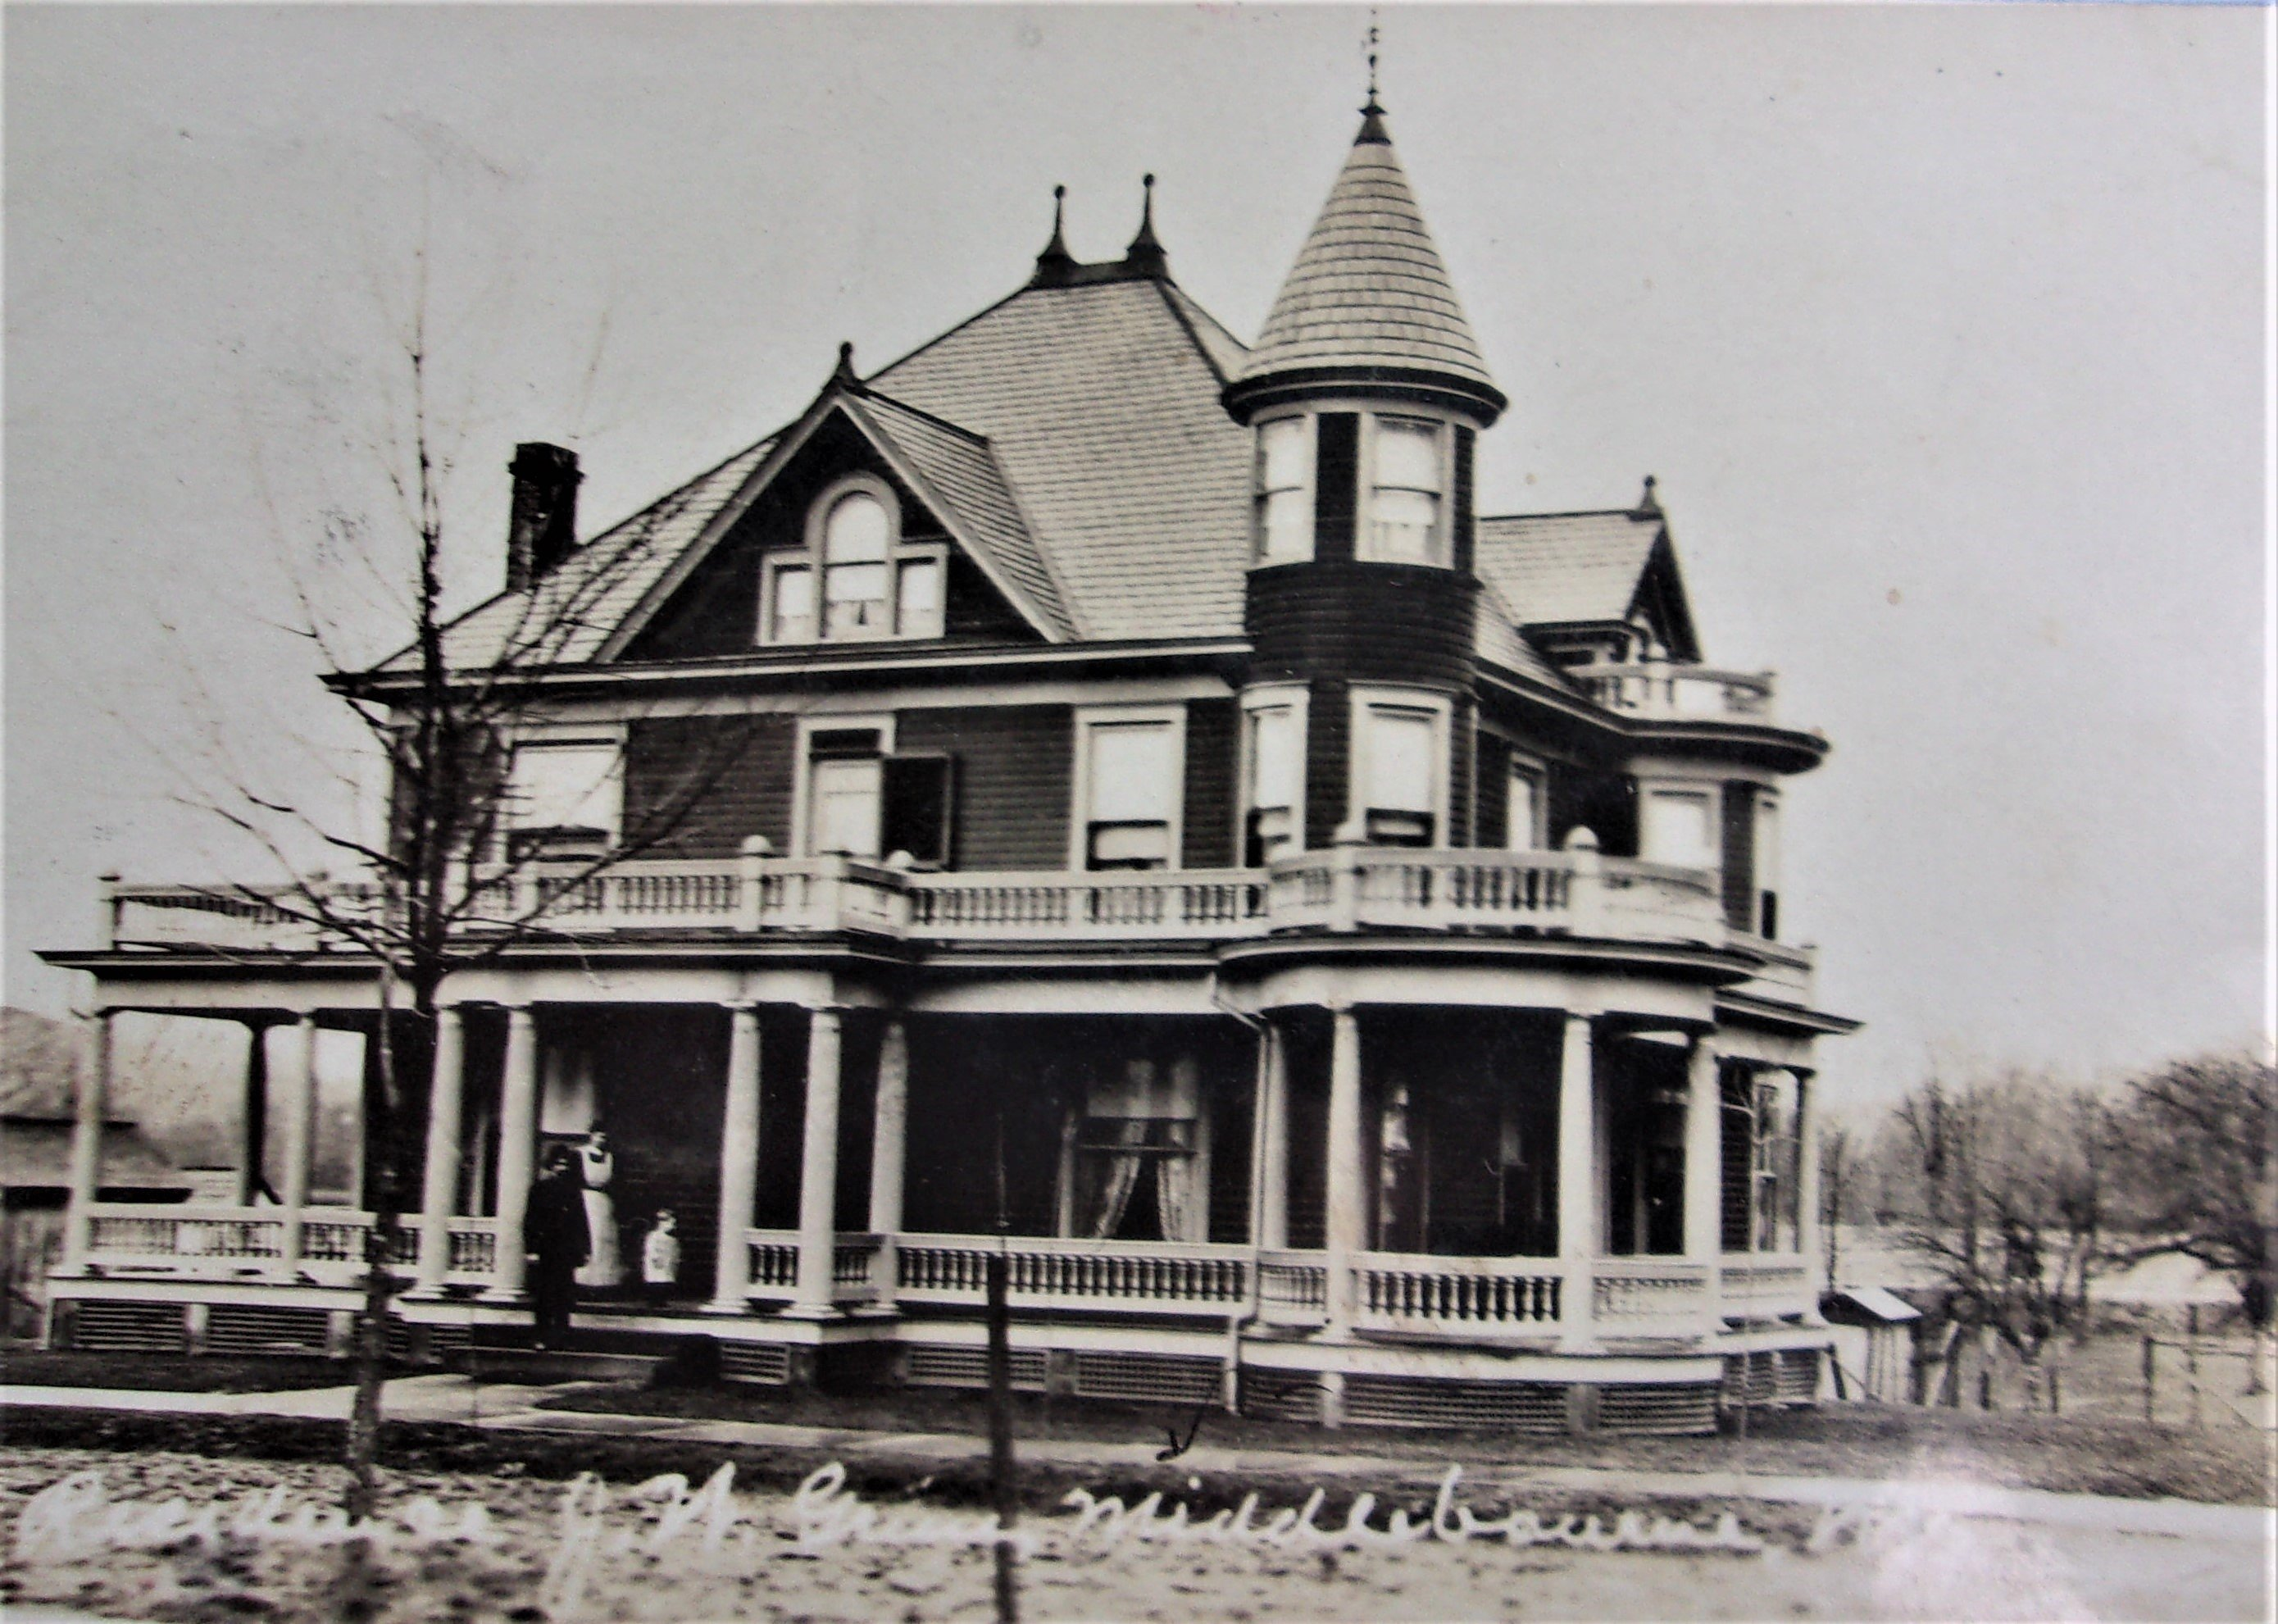 Ca. 1910 view of the J.W. Grim house